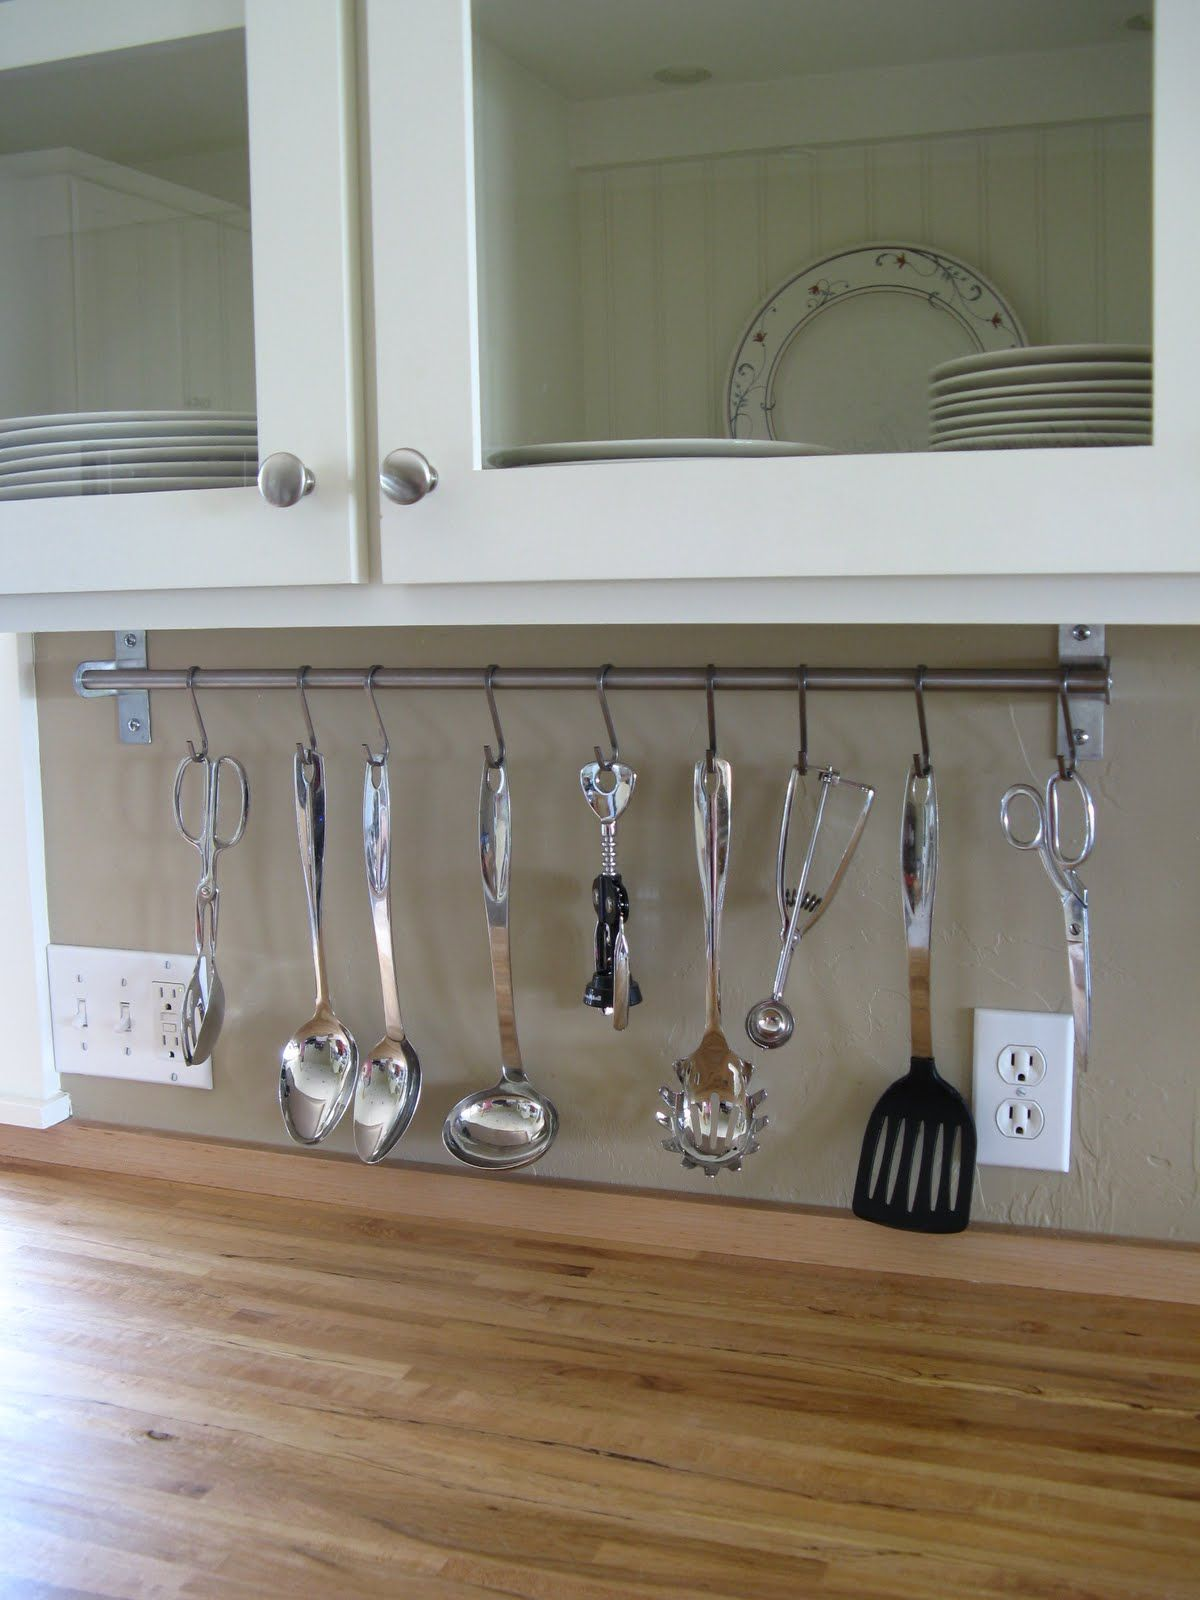 Quick Kitchen Design Tool Make The Most Out Of Your Kitchen Space Consider Hanging